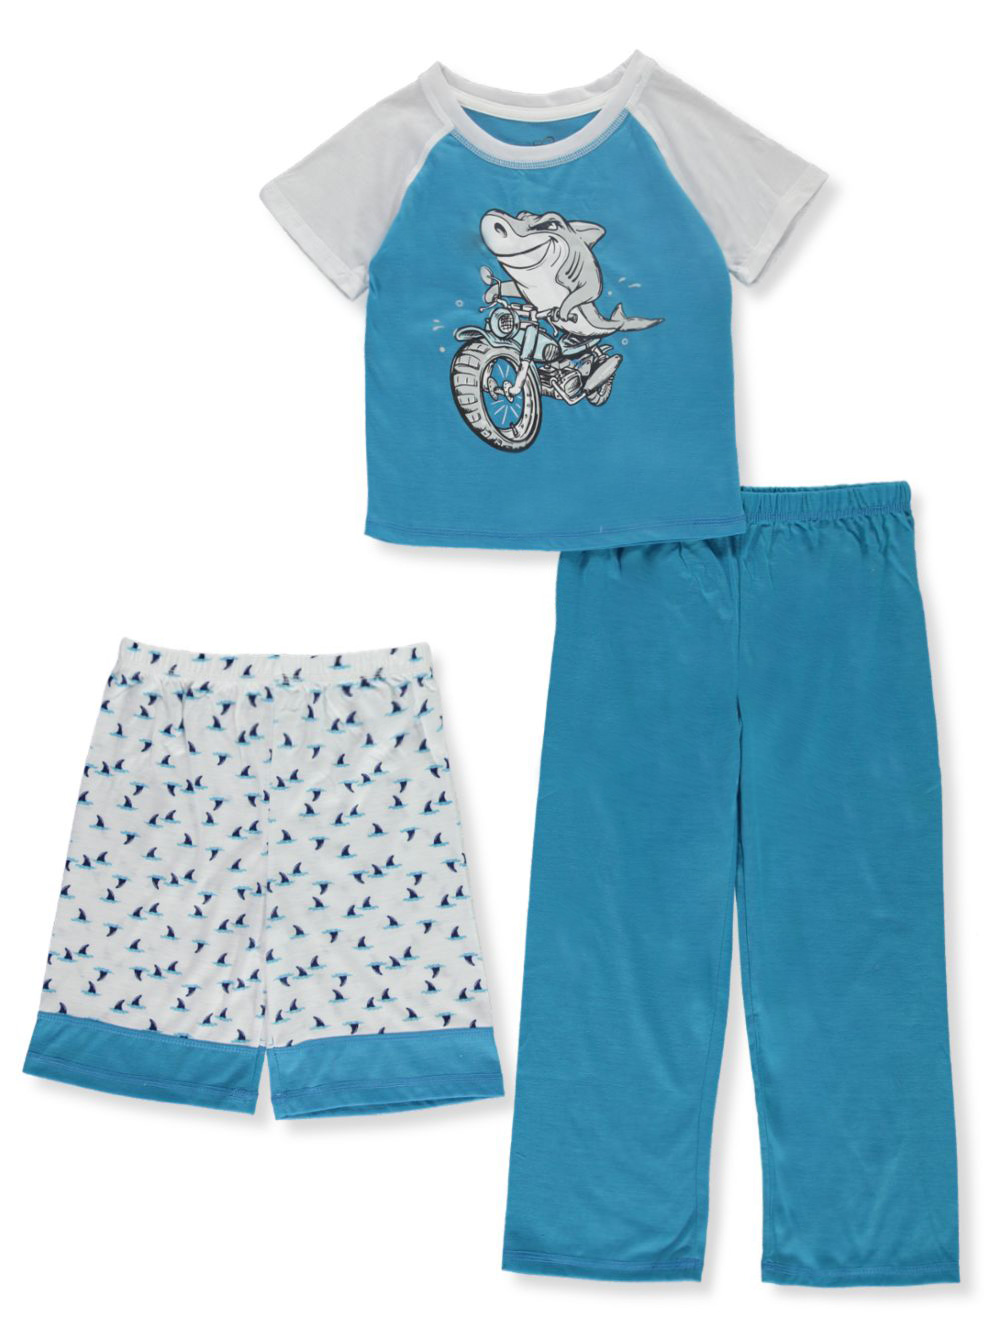 Sleepwear 3-Piece Pajama Set